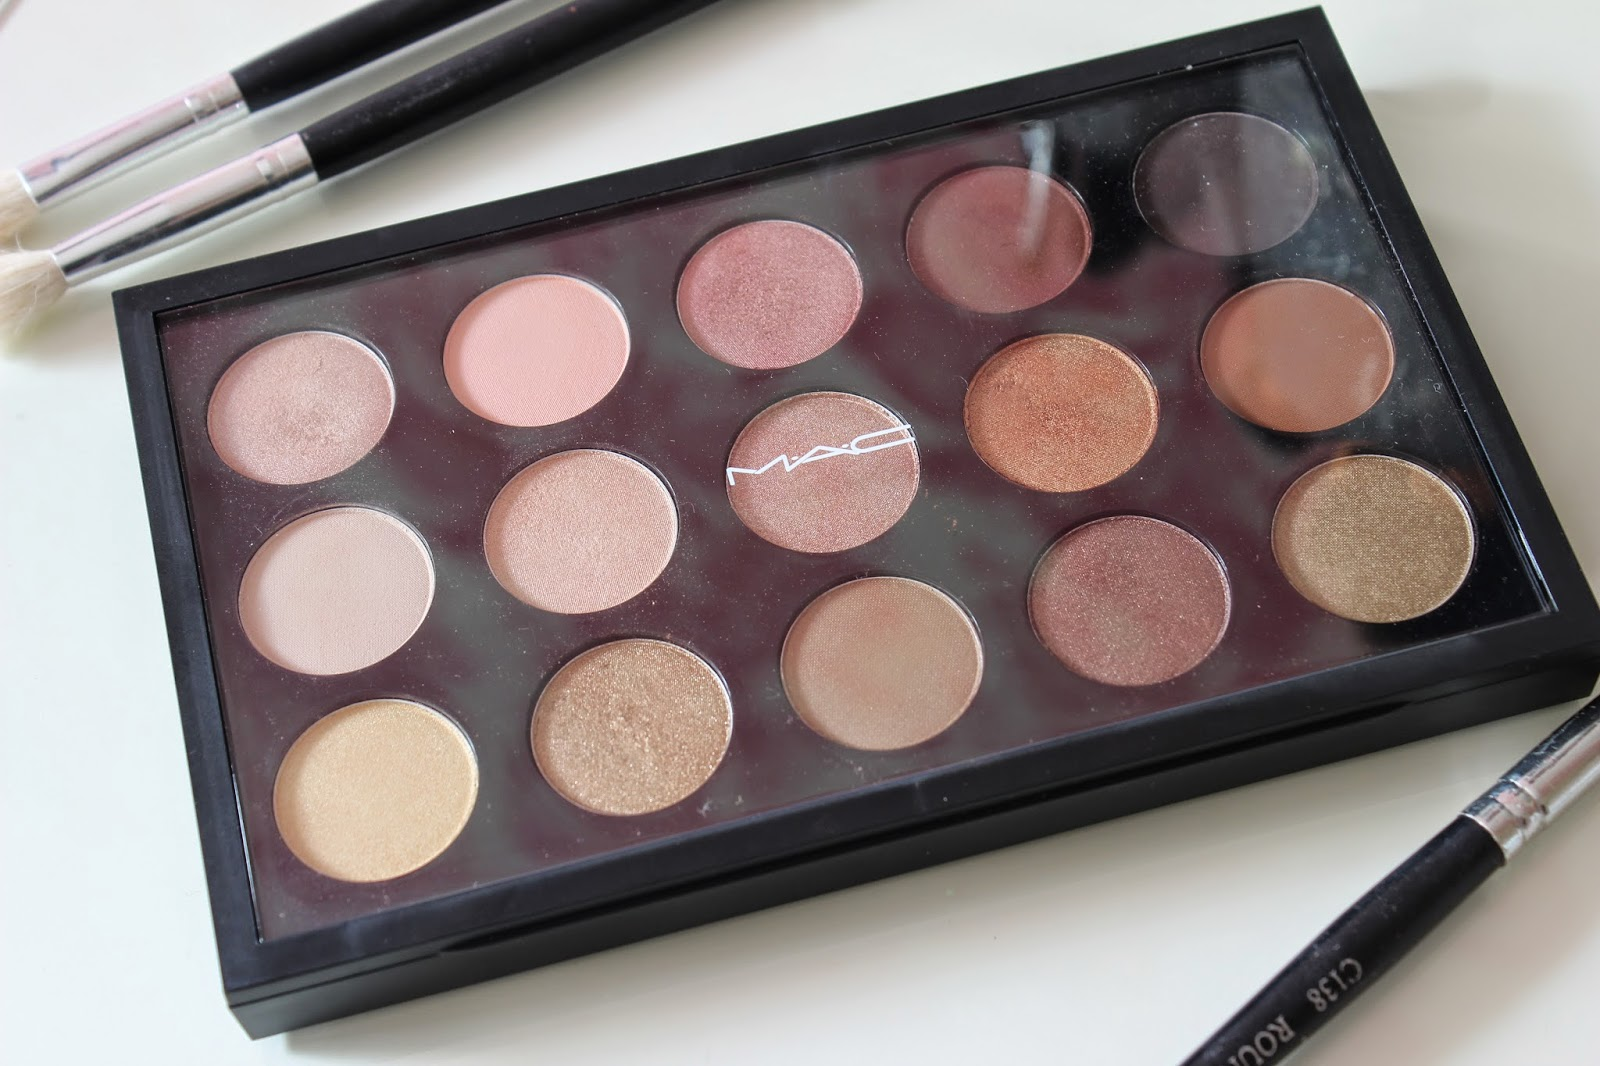 Mac eye shadow x15 warm neutral palette review swatches mac eye shadow x15 warm neutral palette review swatches altavistaventures